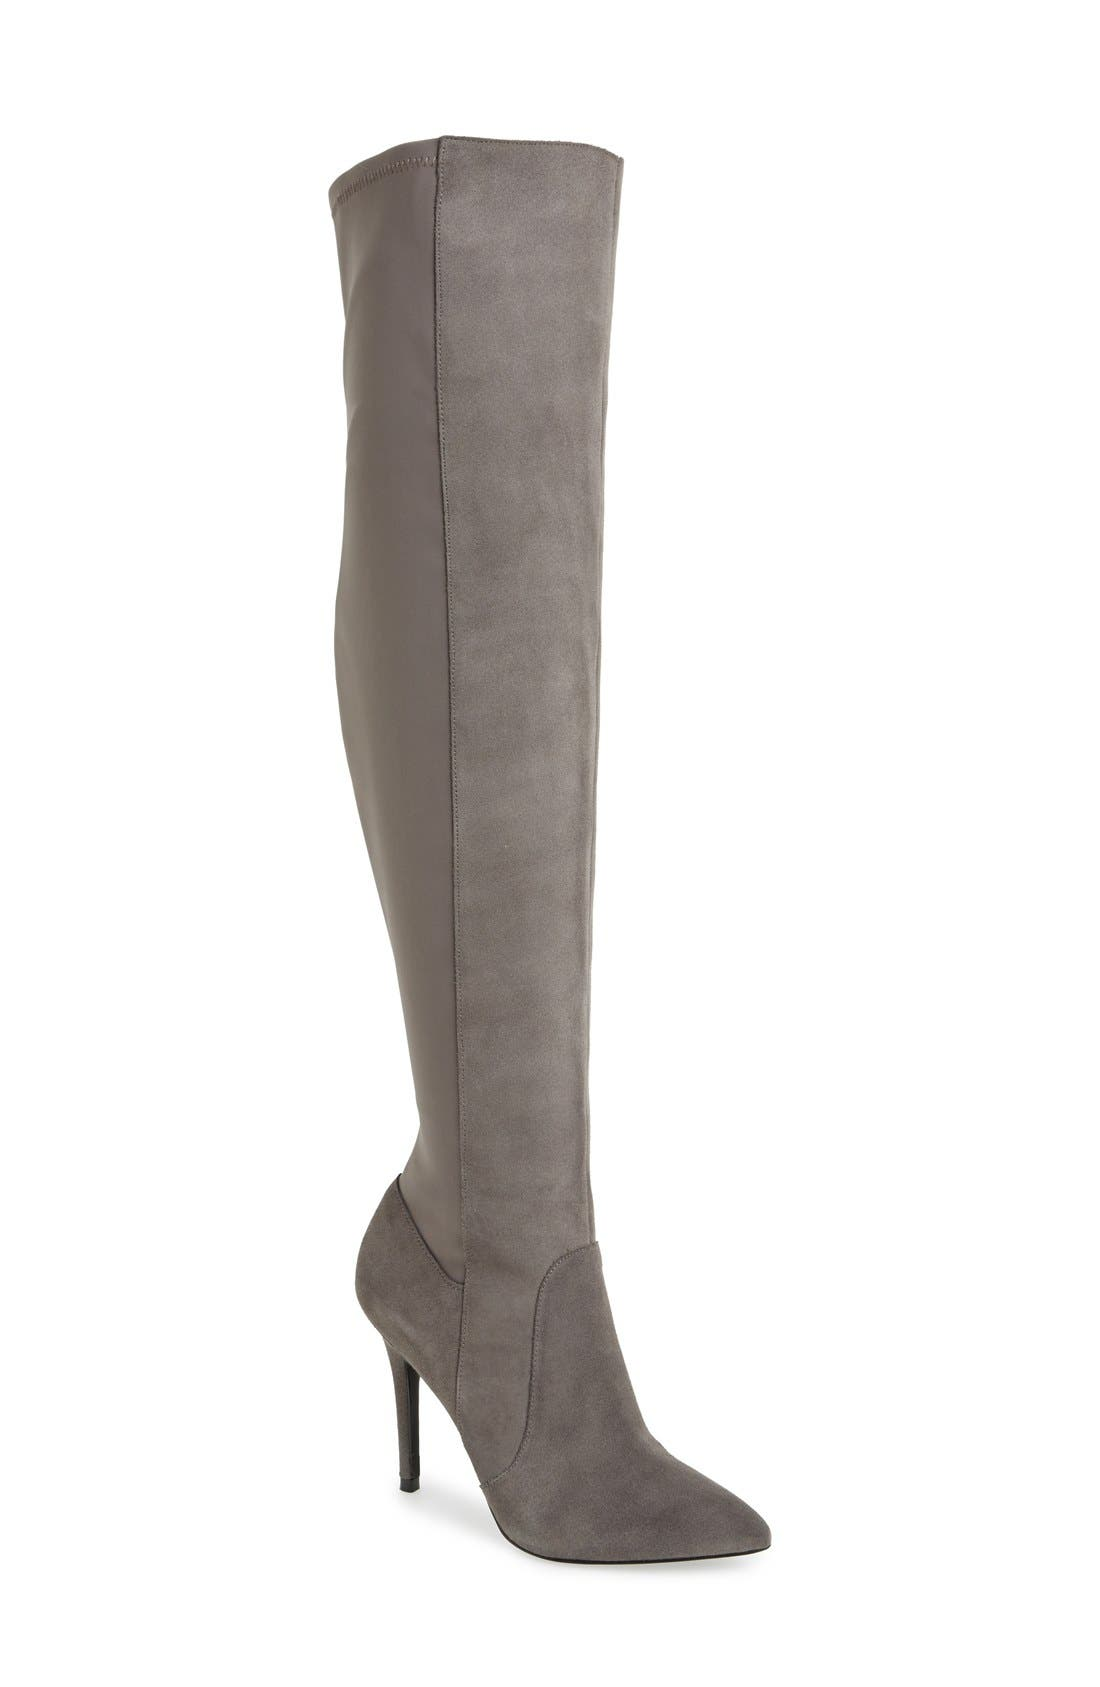 Alternate Image 1 Selected - Charles by Charles David 'Paso' Over The Knee Boot (Women)